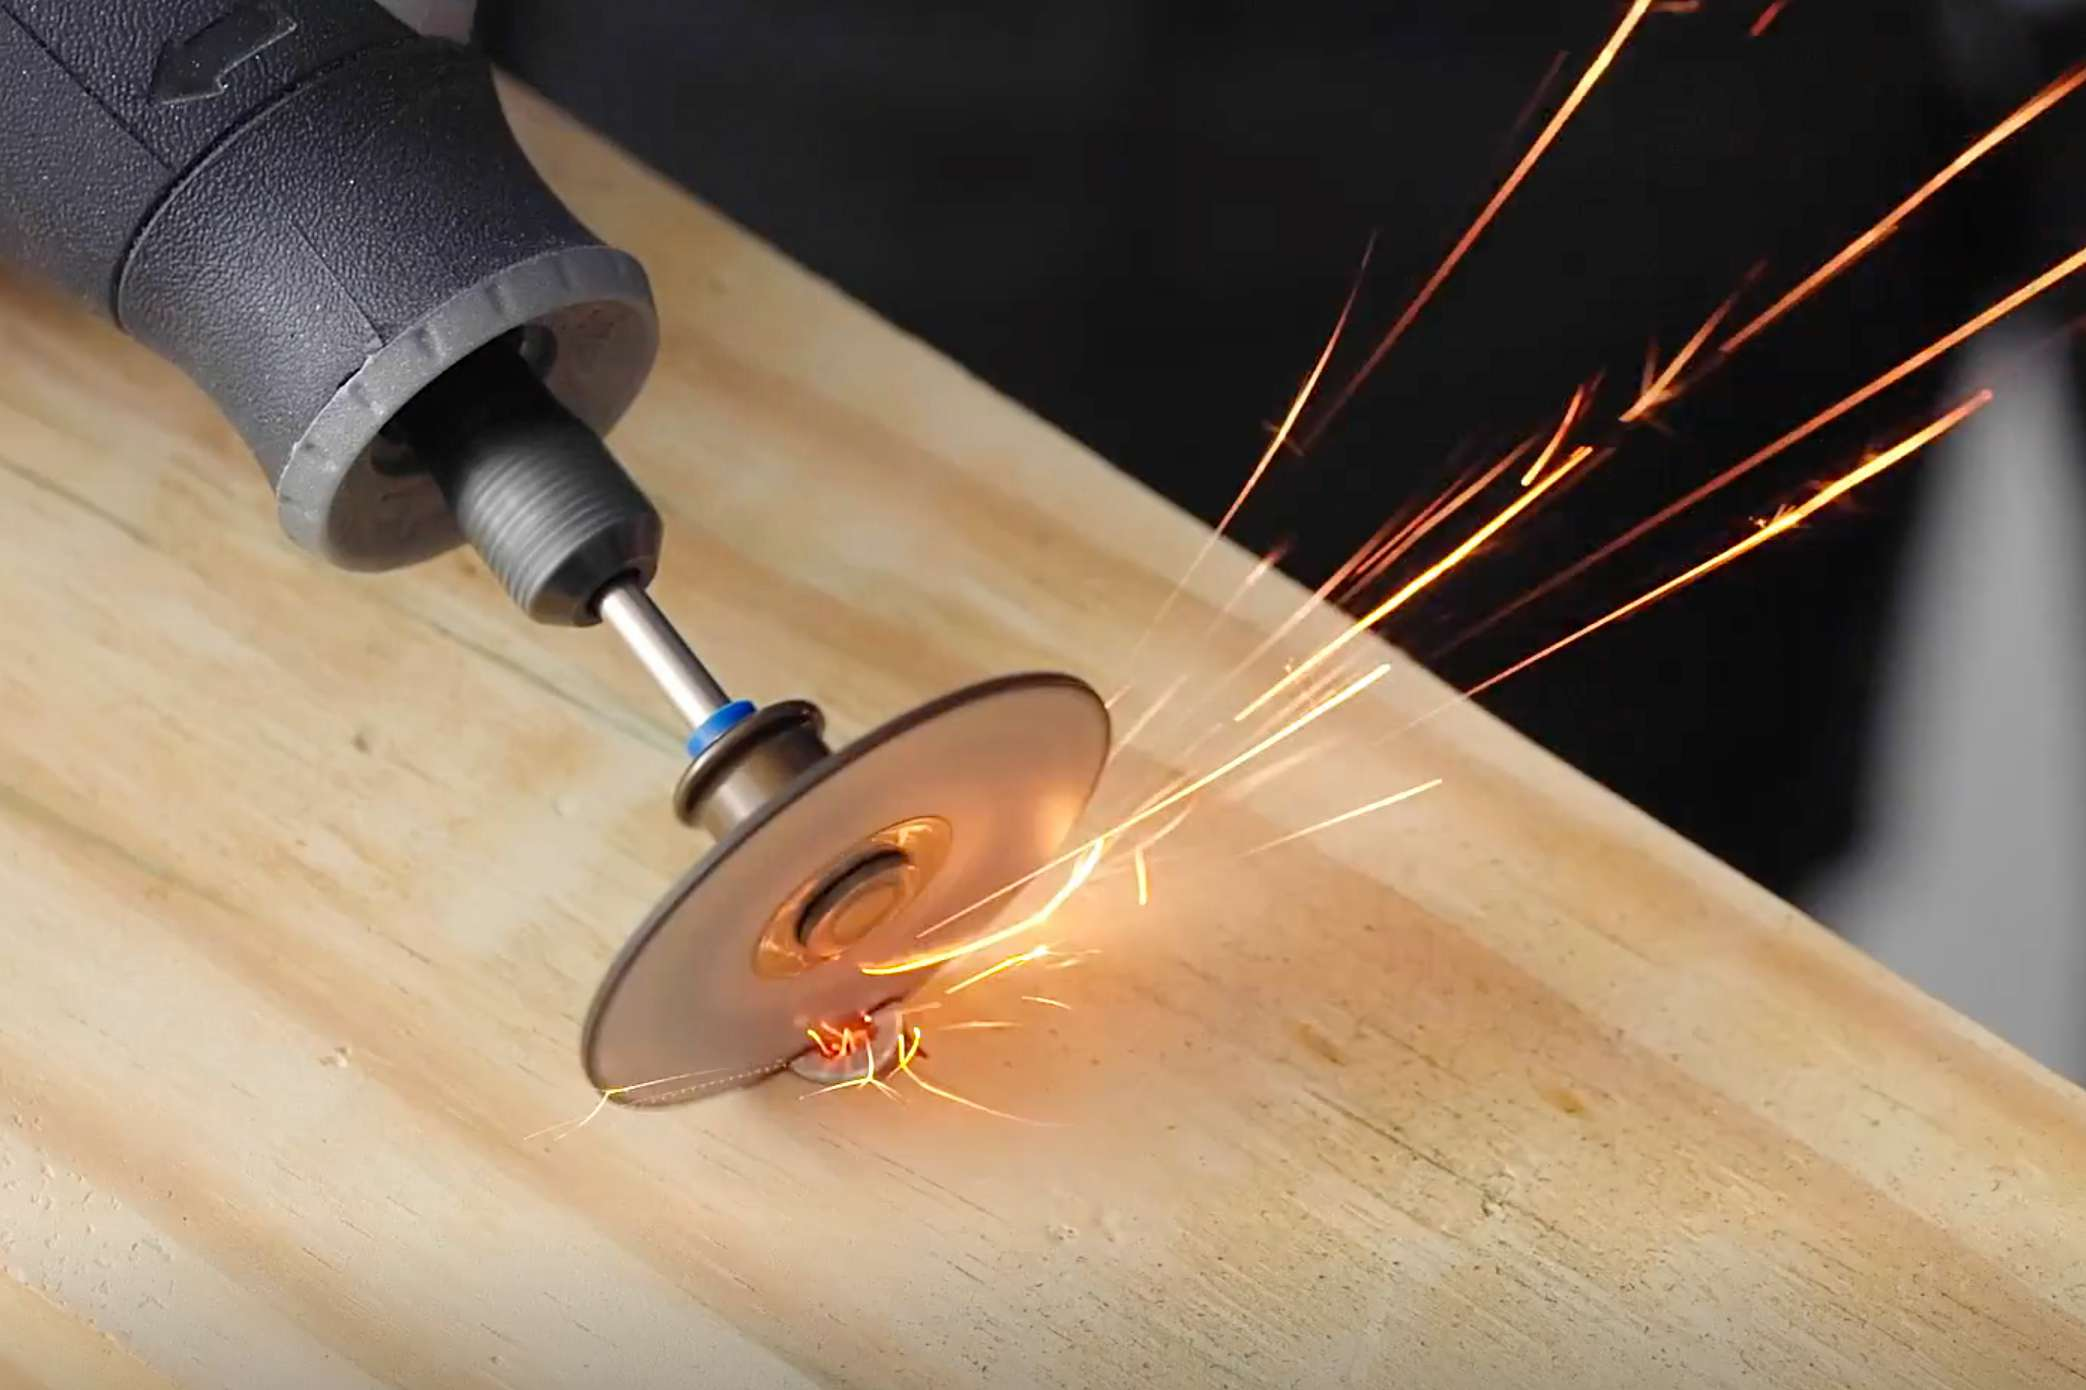 Using a rotary tool to cut a slot in a stripped screw